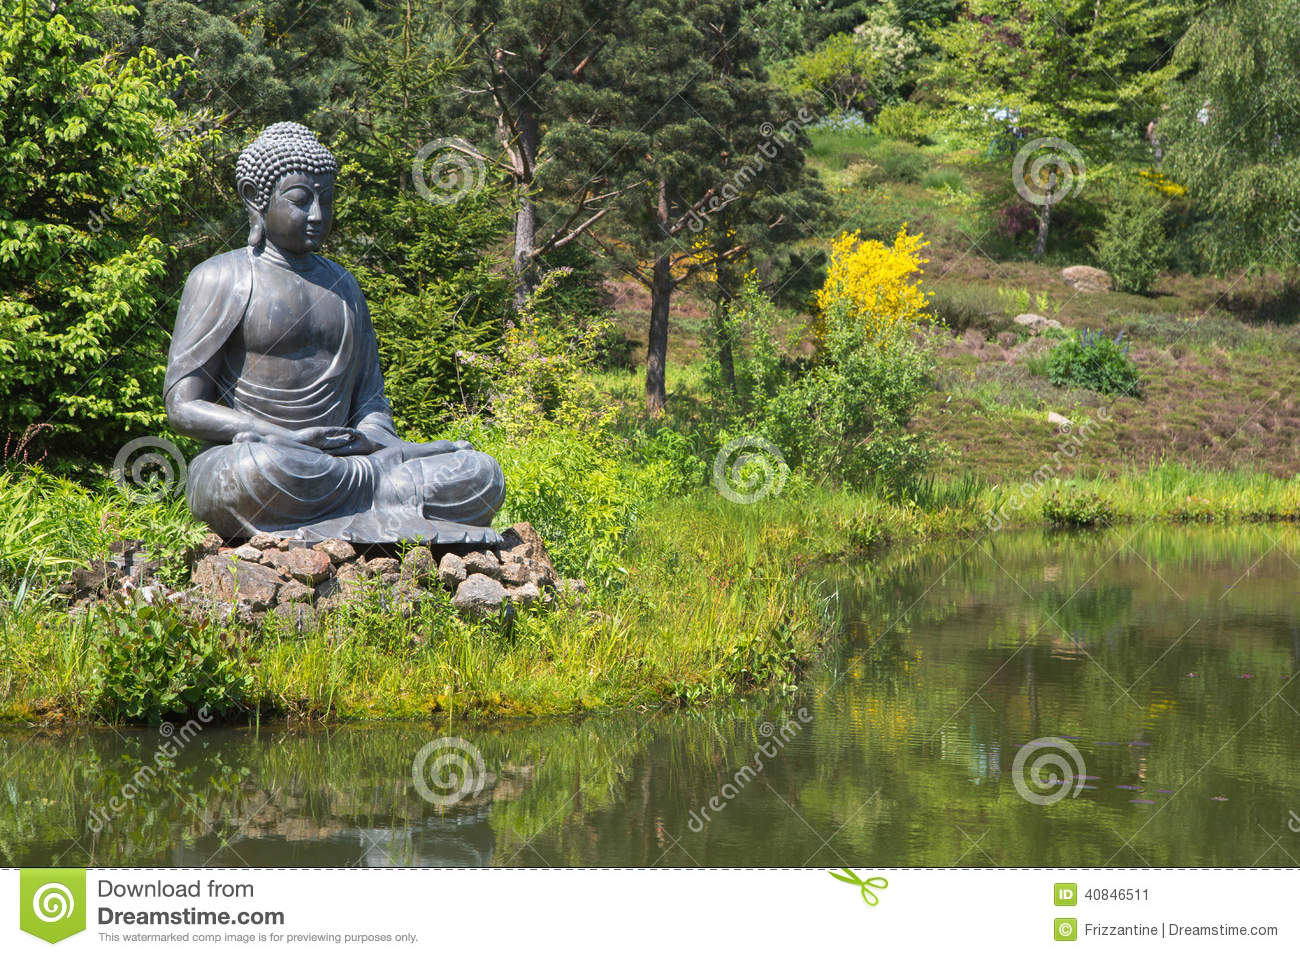 Big Buddha Statue Next To The Garden Pond.